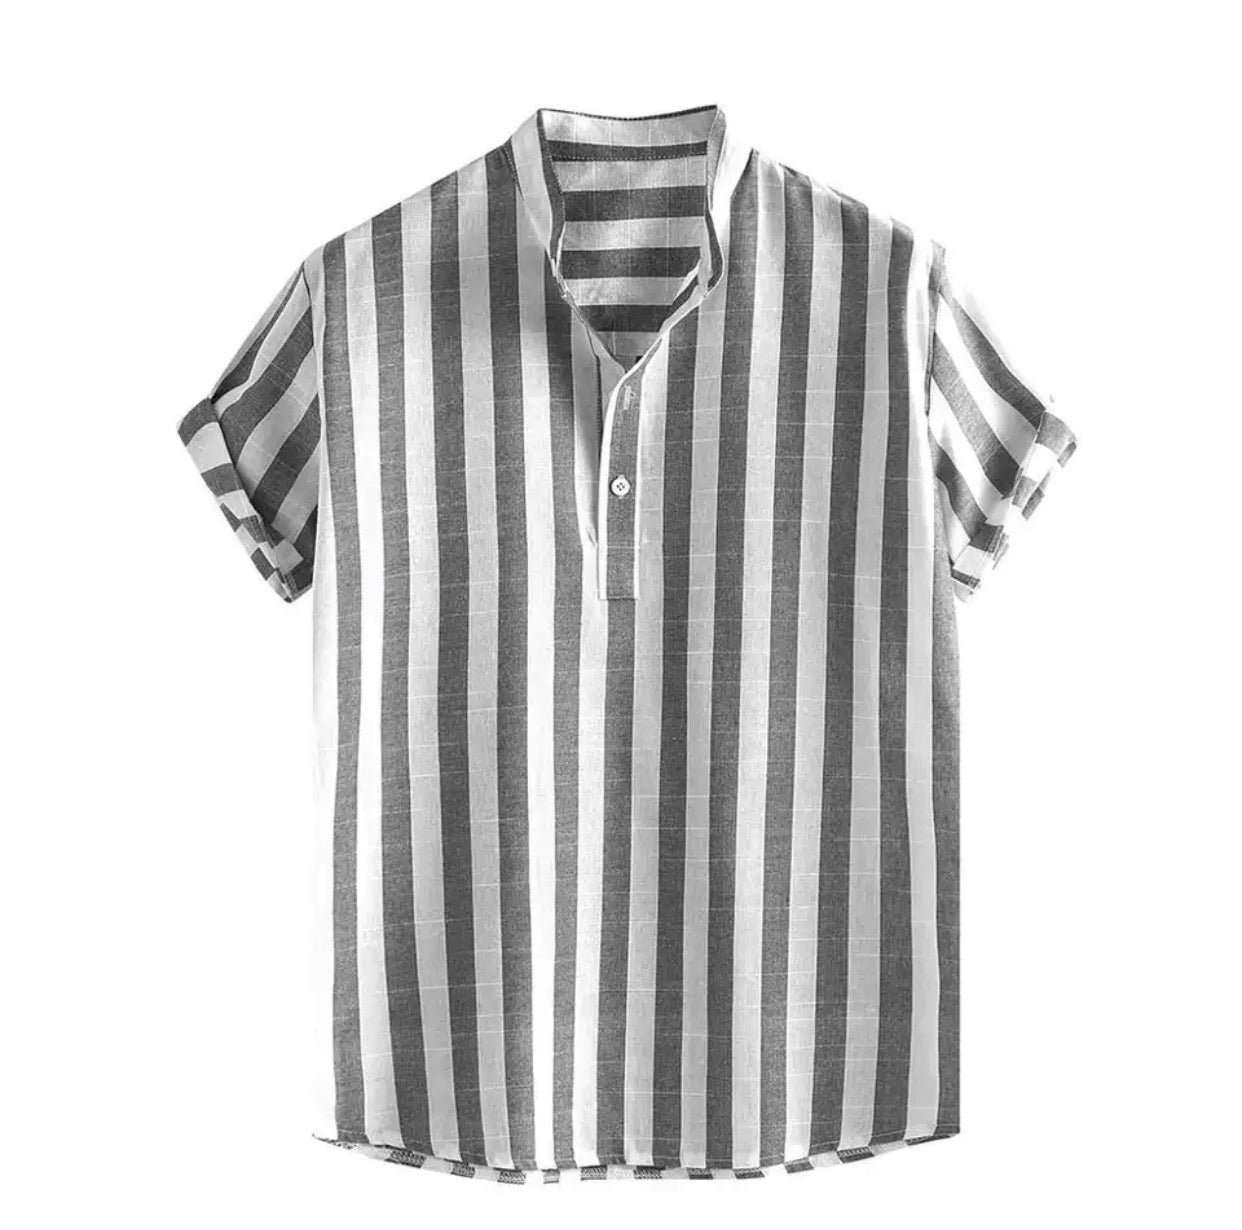 The Striped Linen Henley Shirt - Up to Size XXXL